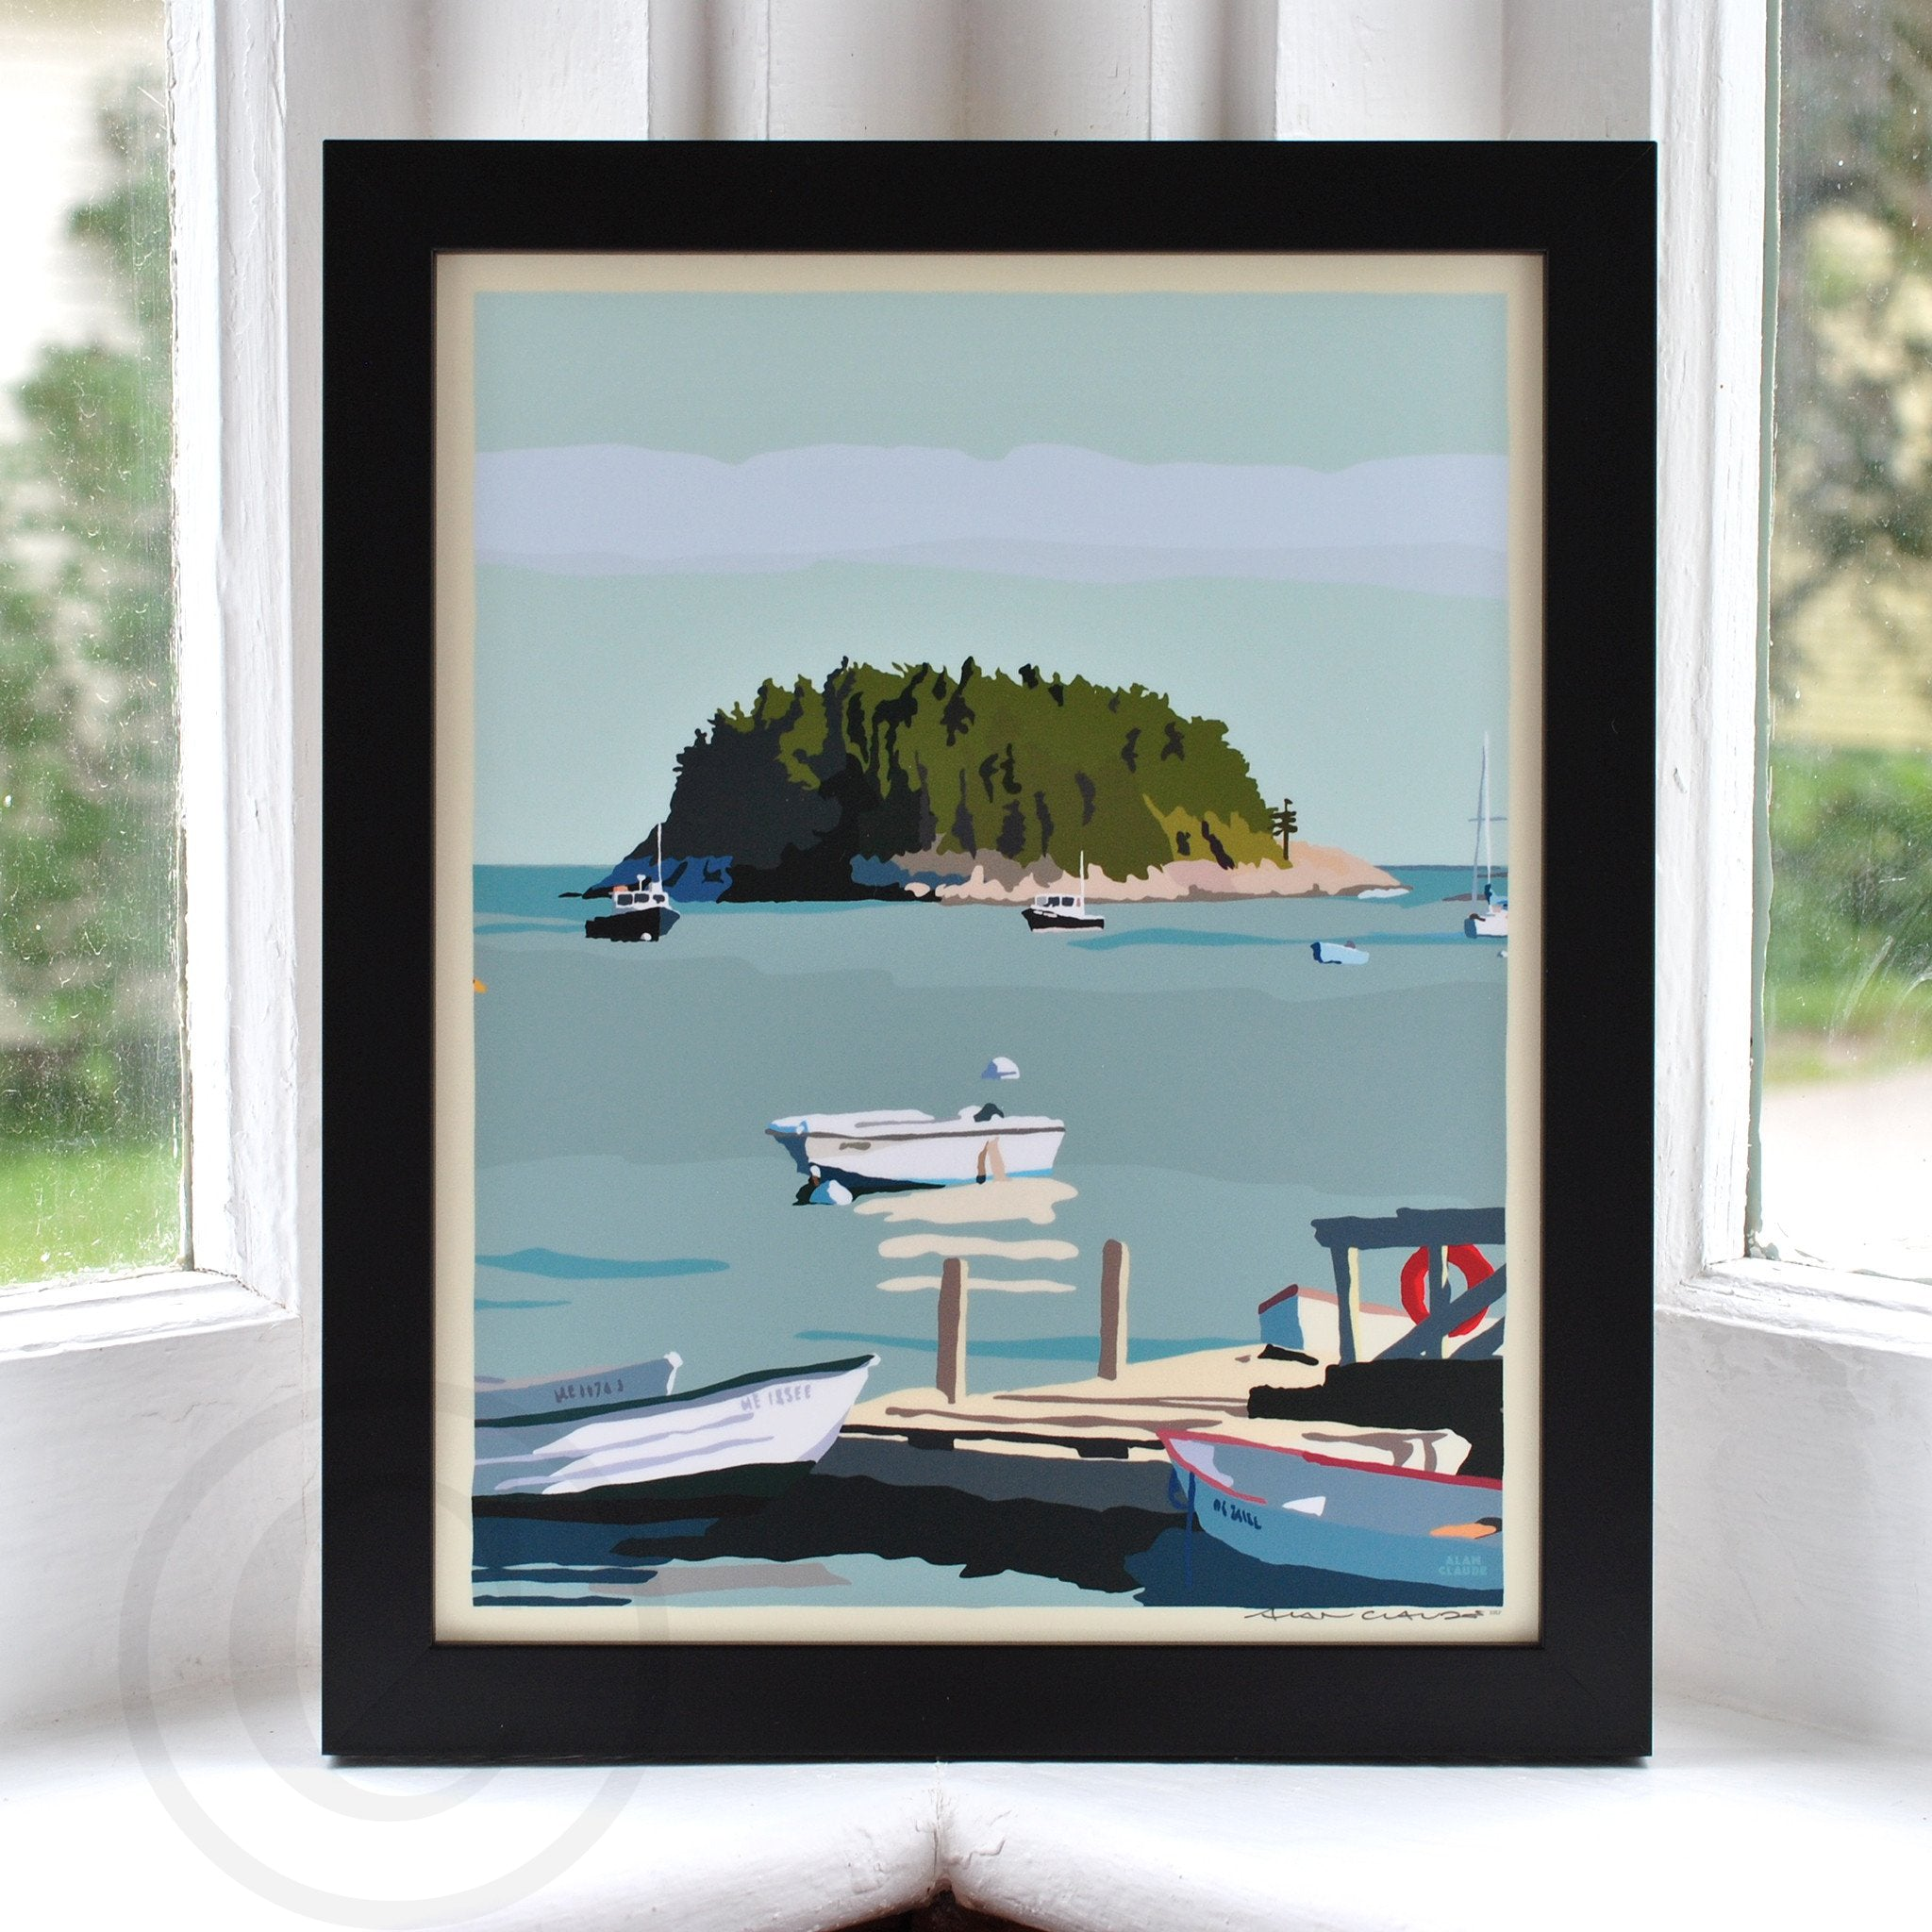 "I Am An Island - vertical format - Art Print 8"" x 10"" Framed Wall Poster - Maine"